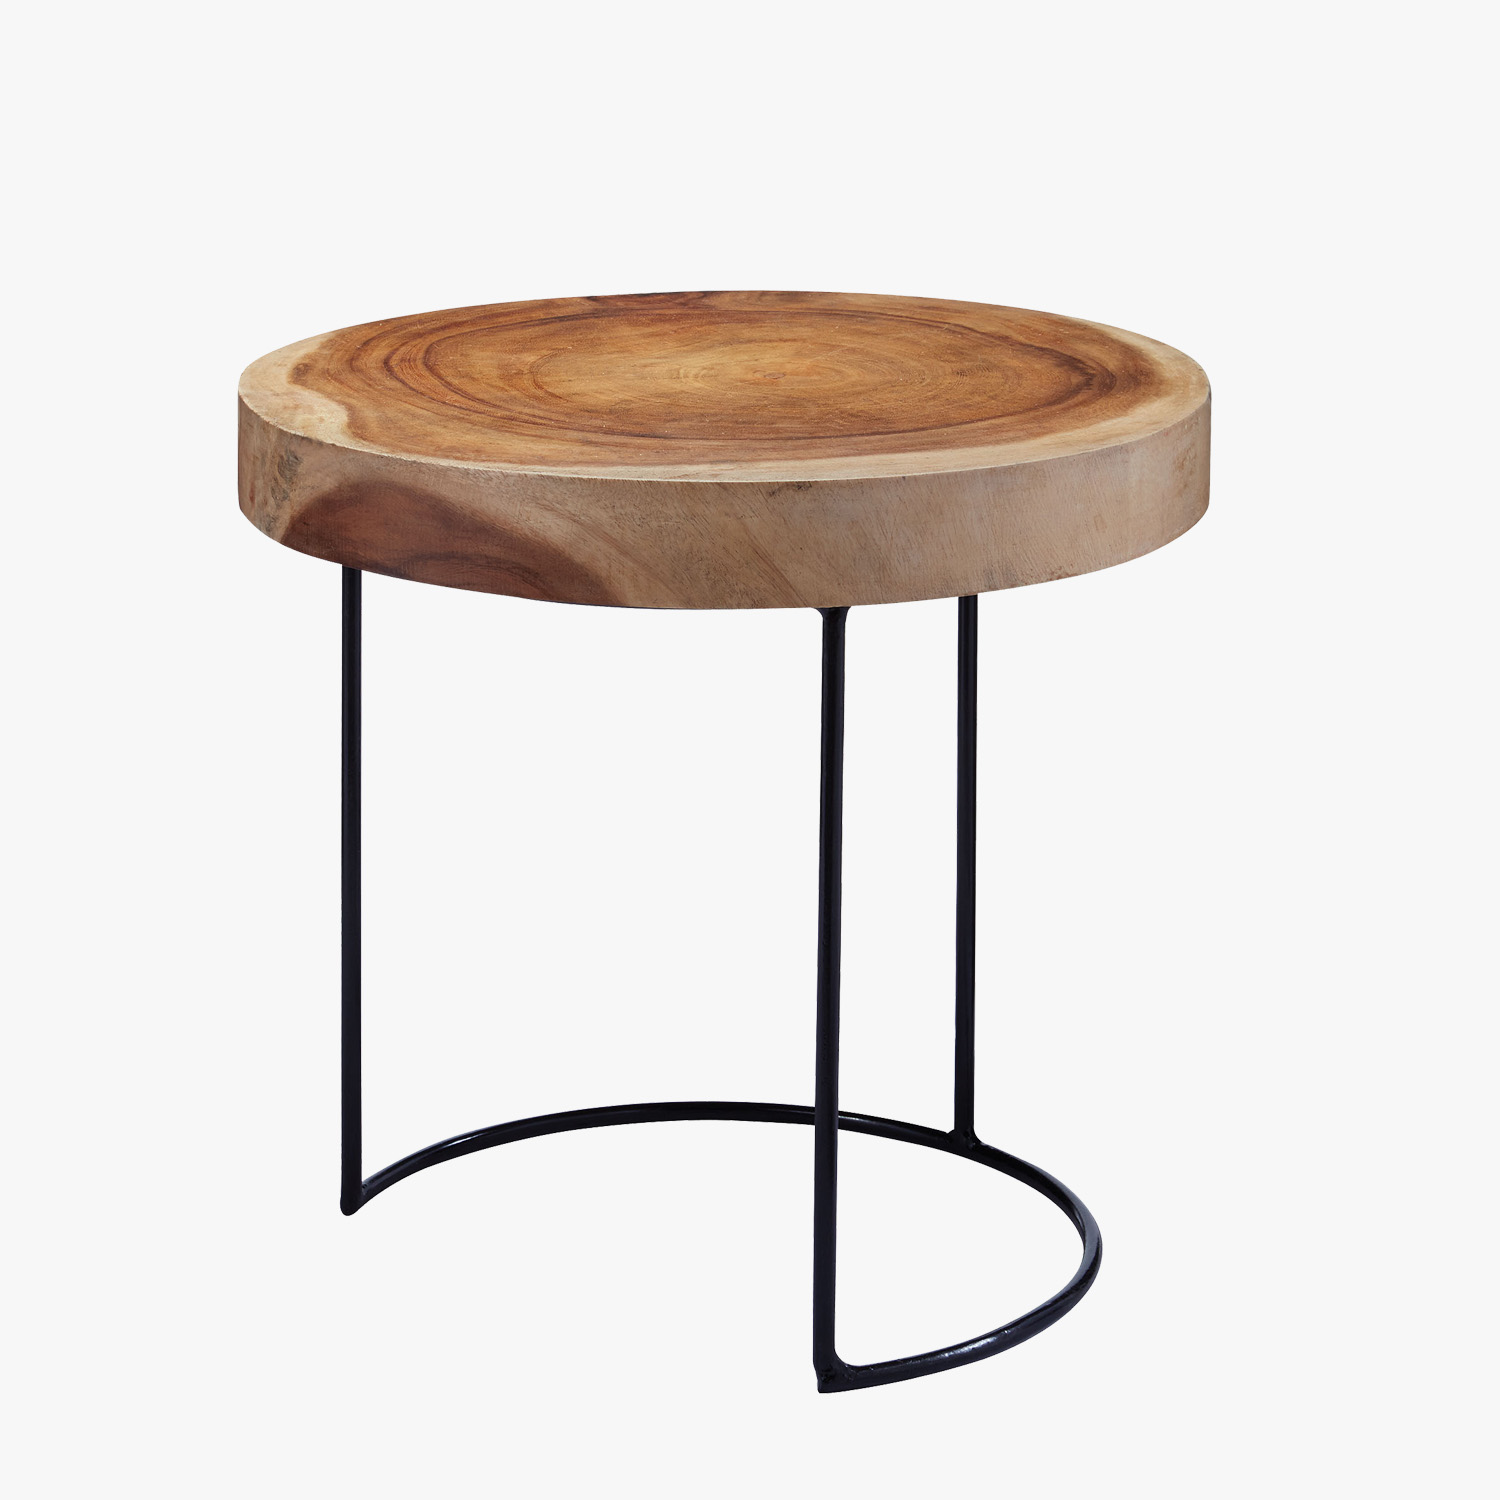 round suar wood accent table tables dear keaton small chairside desk chairs contemporary coffee black glass patio leather furniture white end with storage entry for spaces natural